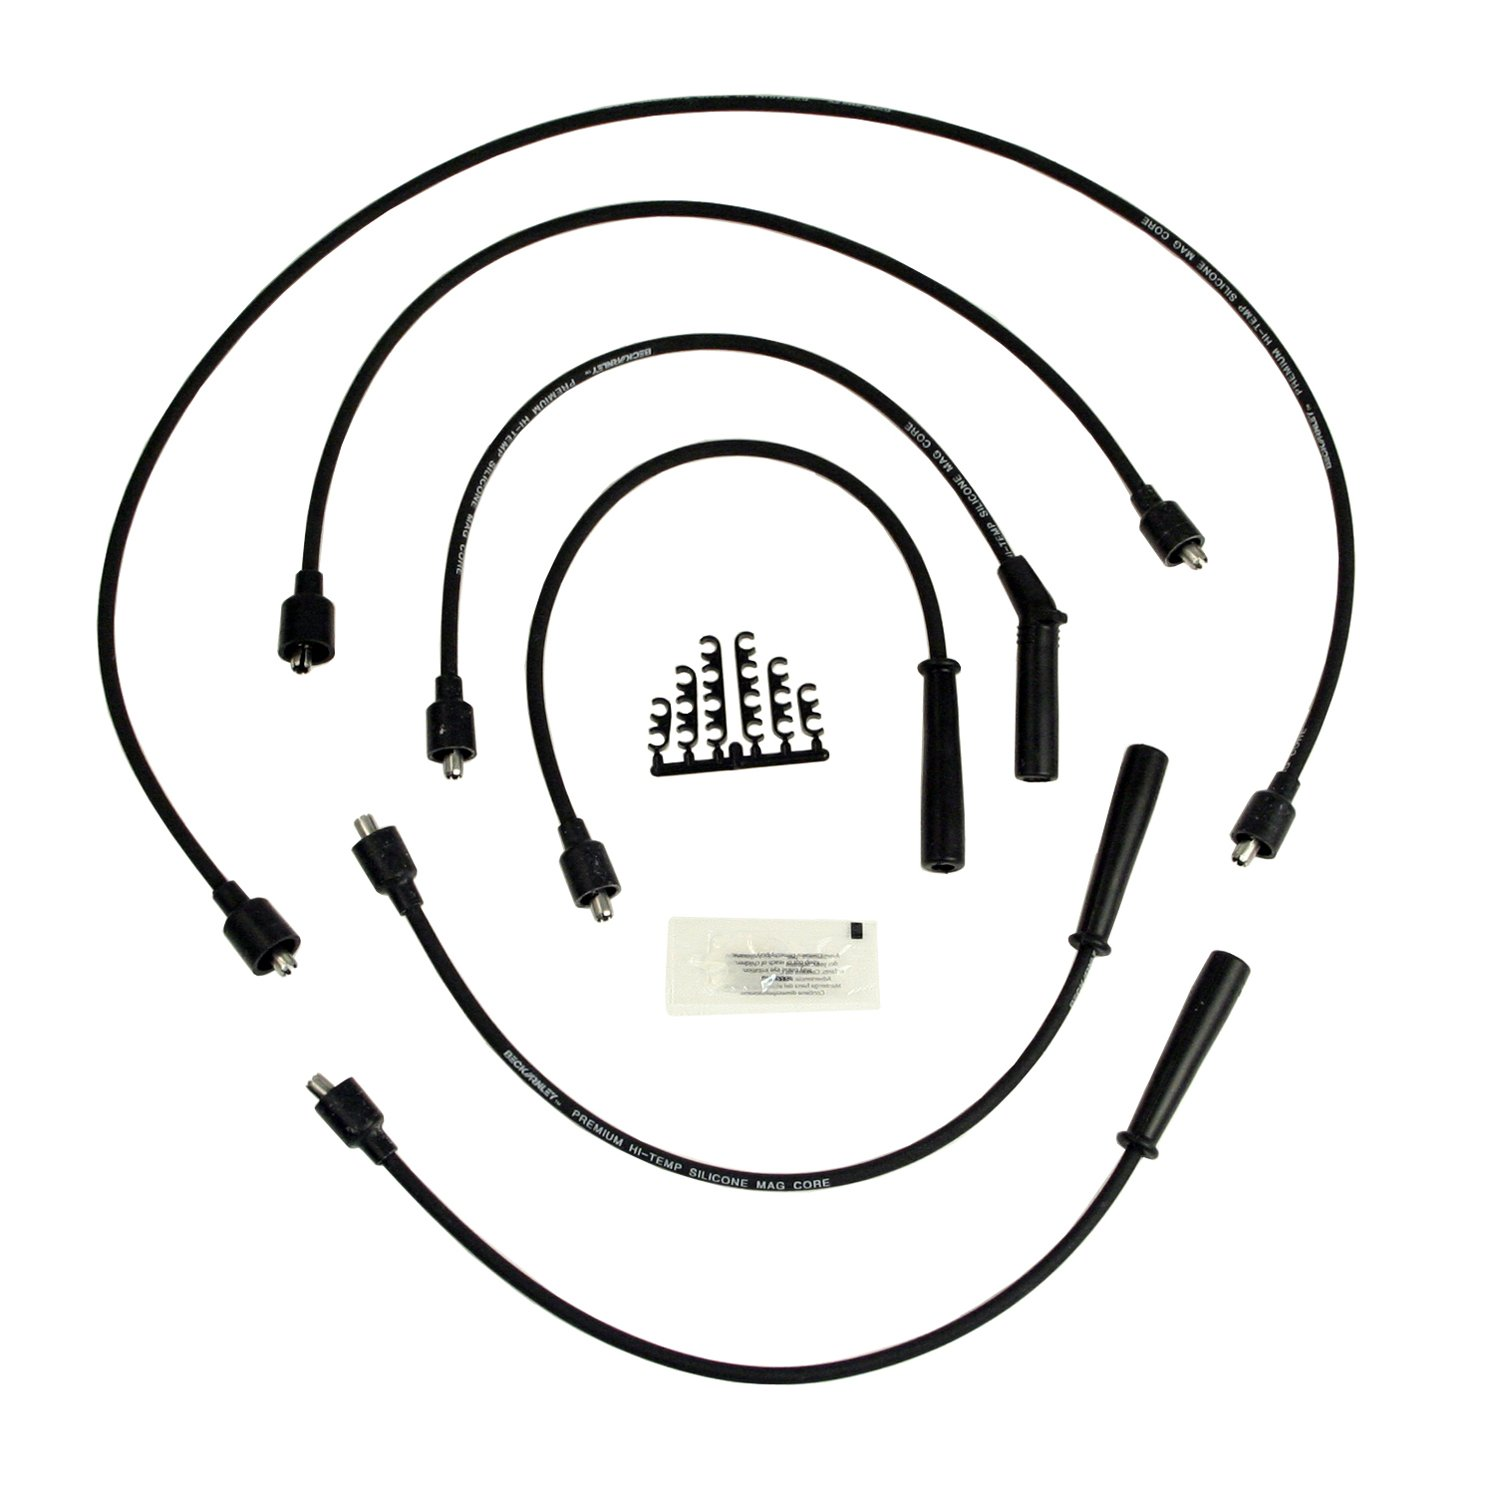 Beck Arnley 175-5651 Premium Ignition Wire Set BEC175-5651